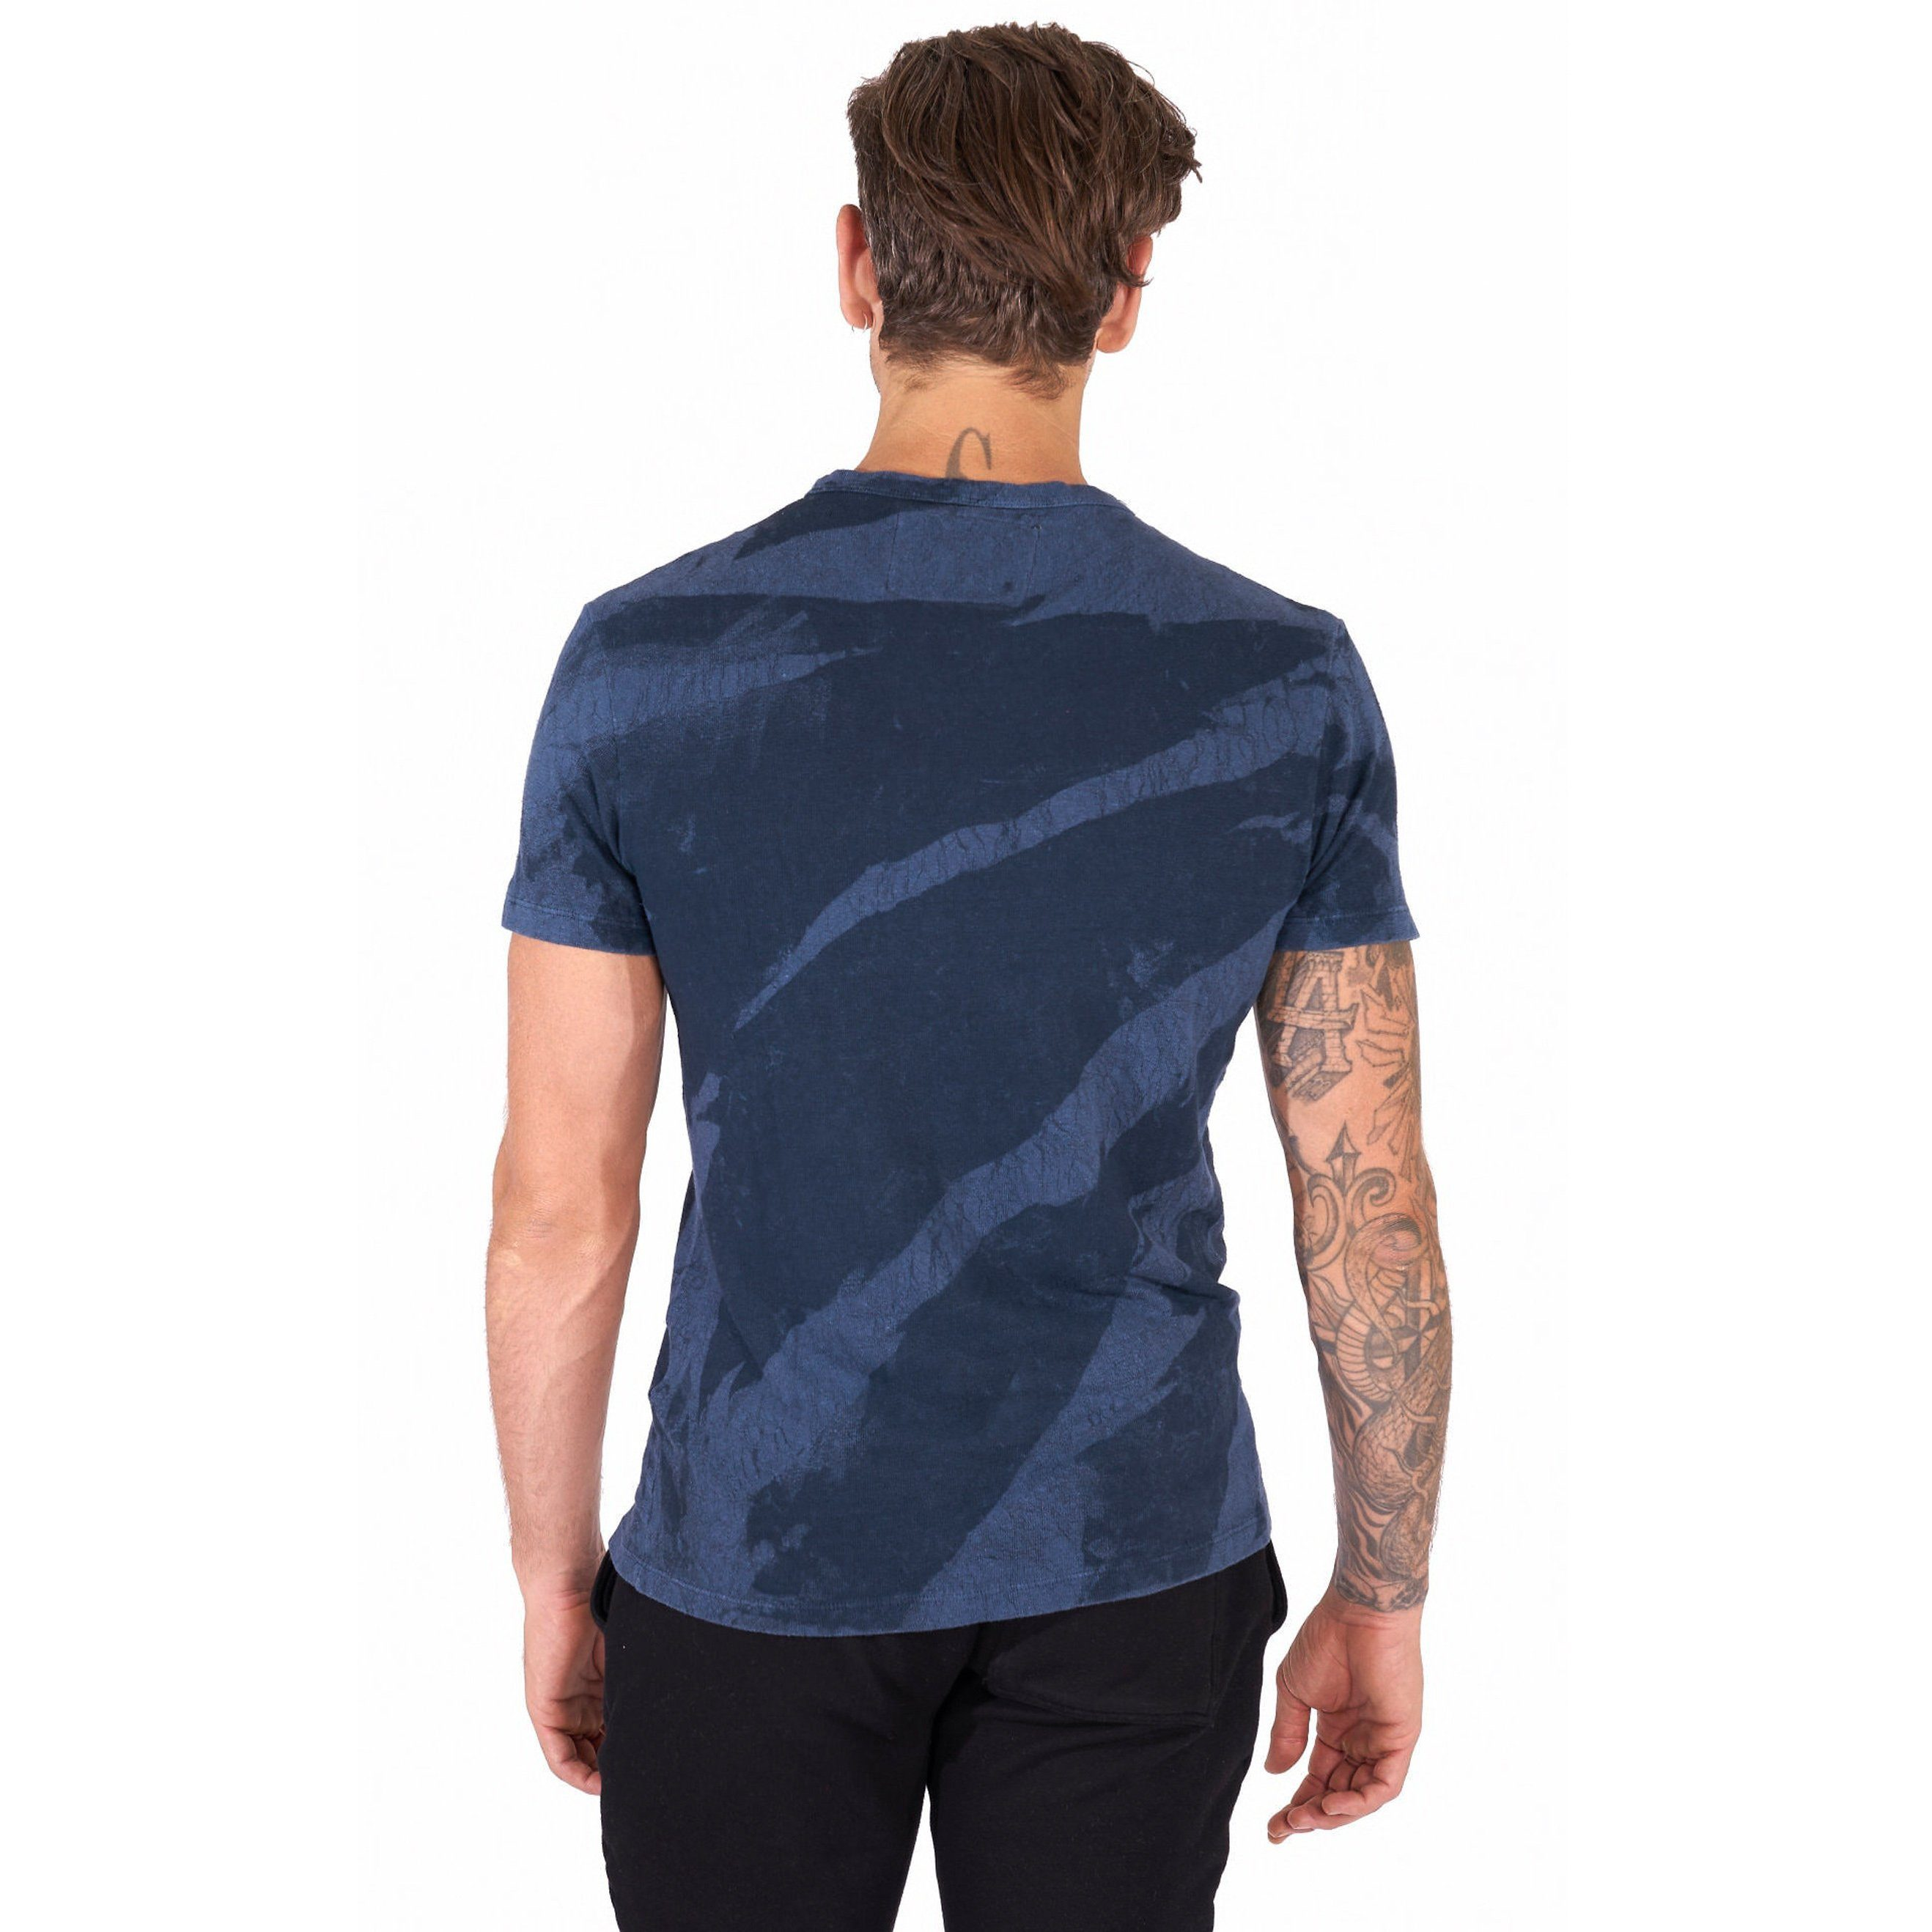 Steve T-Shirt in Navy Crackle - Mitchell Evan